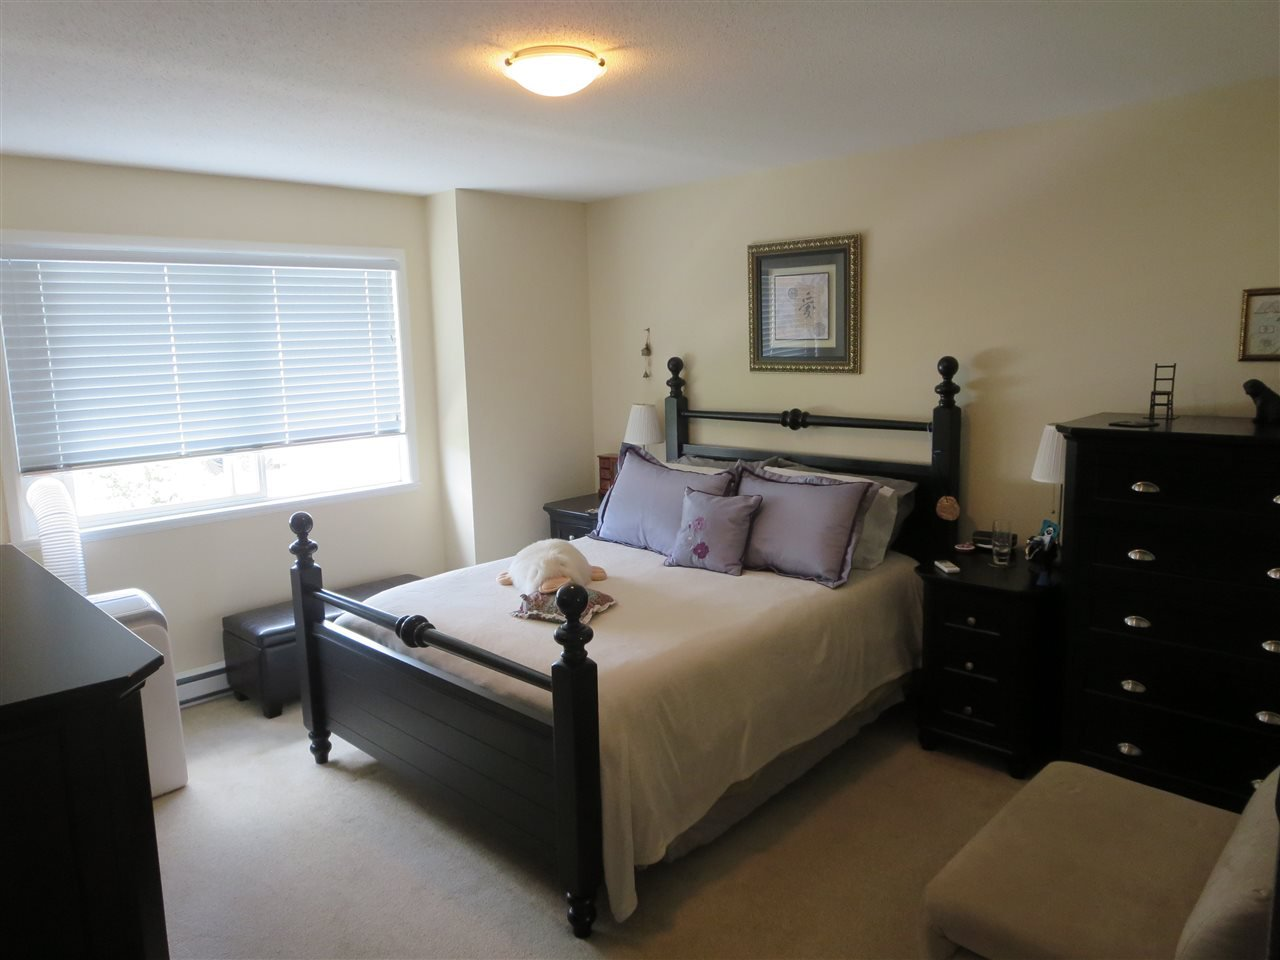 Photo 8: Photos: 63 3127 SKEENA Street in Port Coquitlam: Riverwood Townhouse for sale : MLS®# R2090693